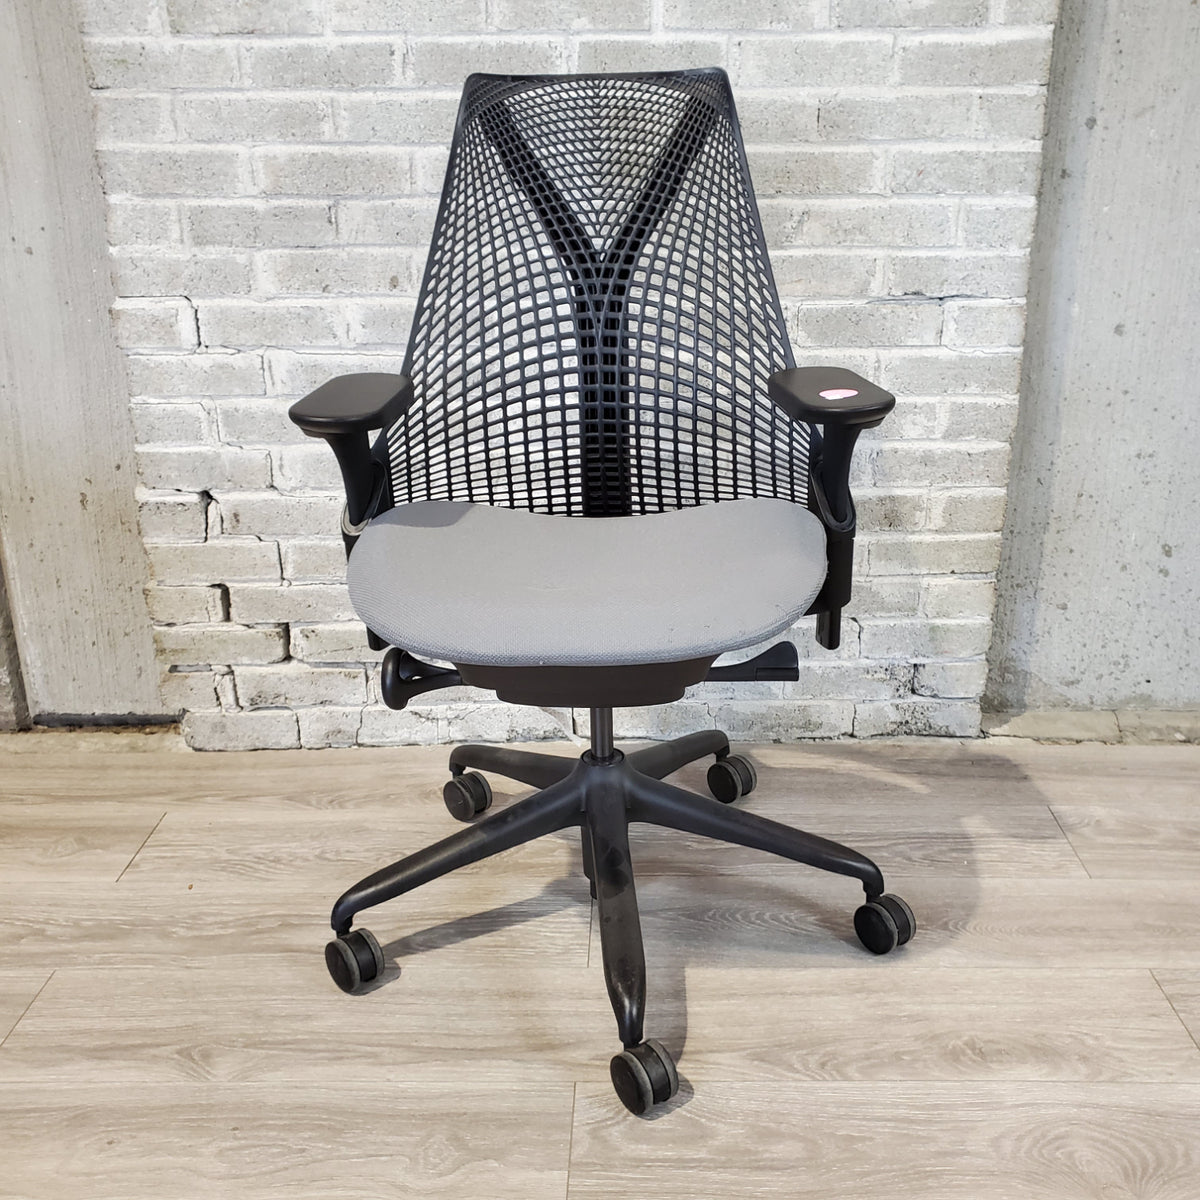 Pre-Owned - Used Herman Miller Sayl Task Chair - Black and Gray - Duckys Office Furniture